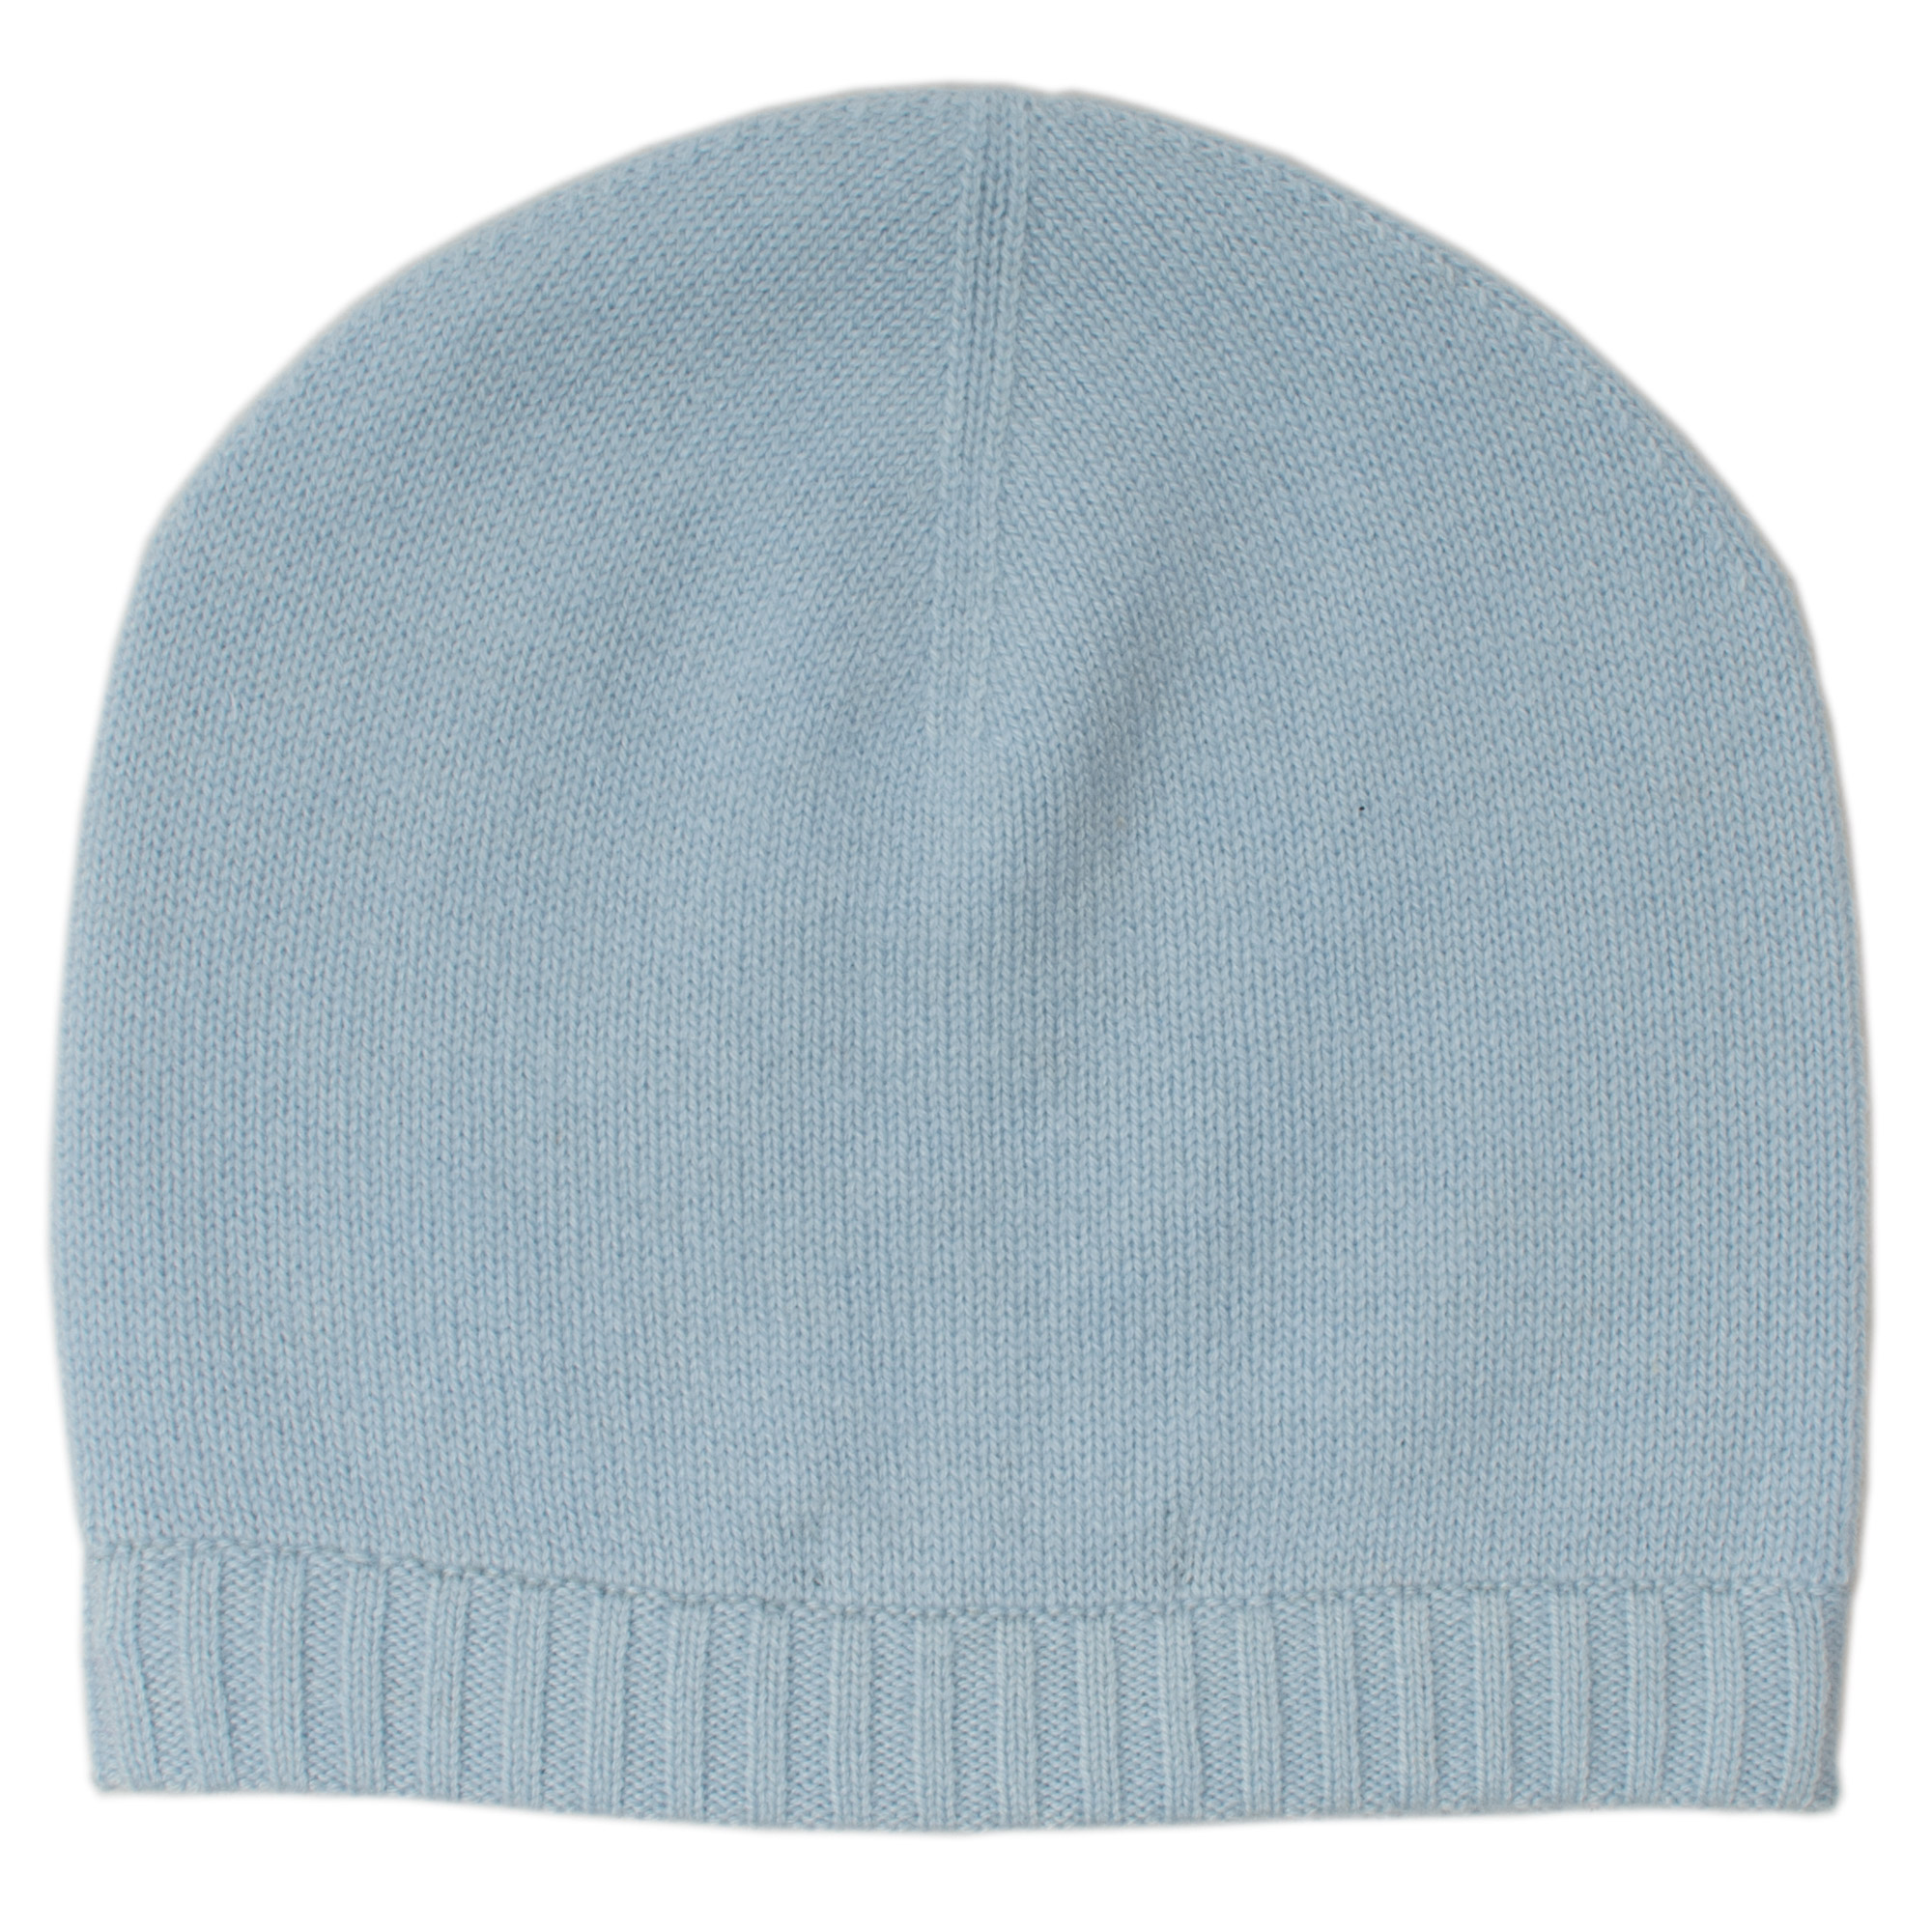 Ribbed Hem Hat - 100% Cashmere - Skyway